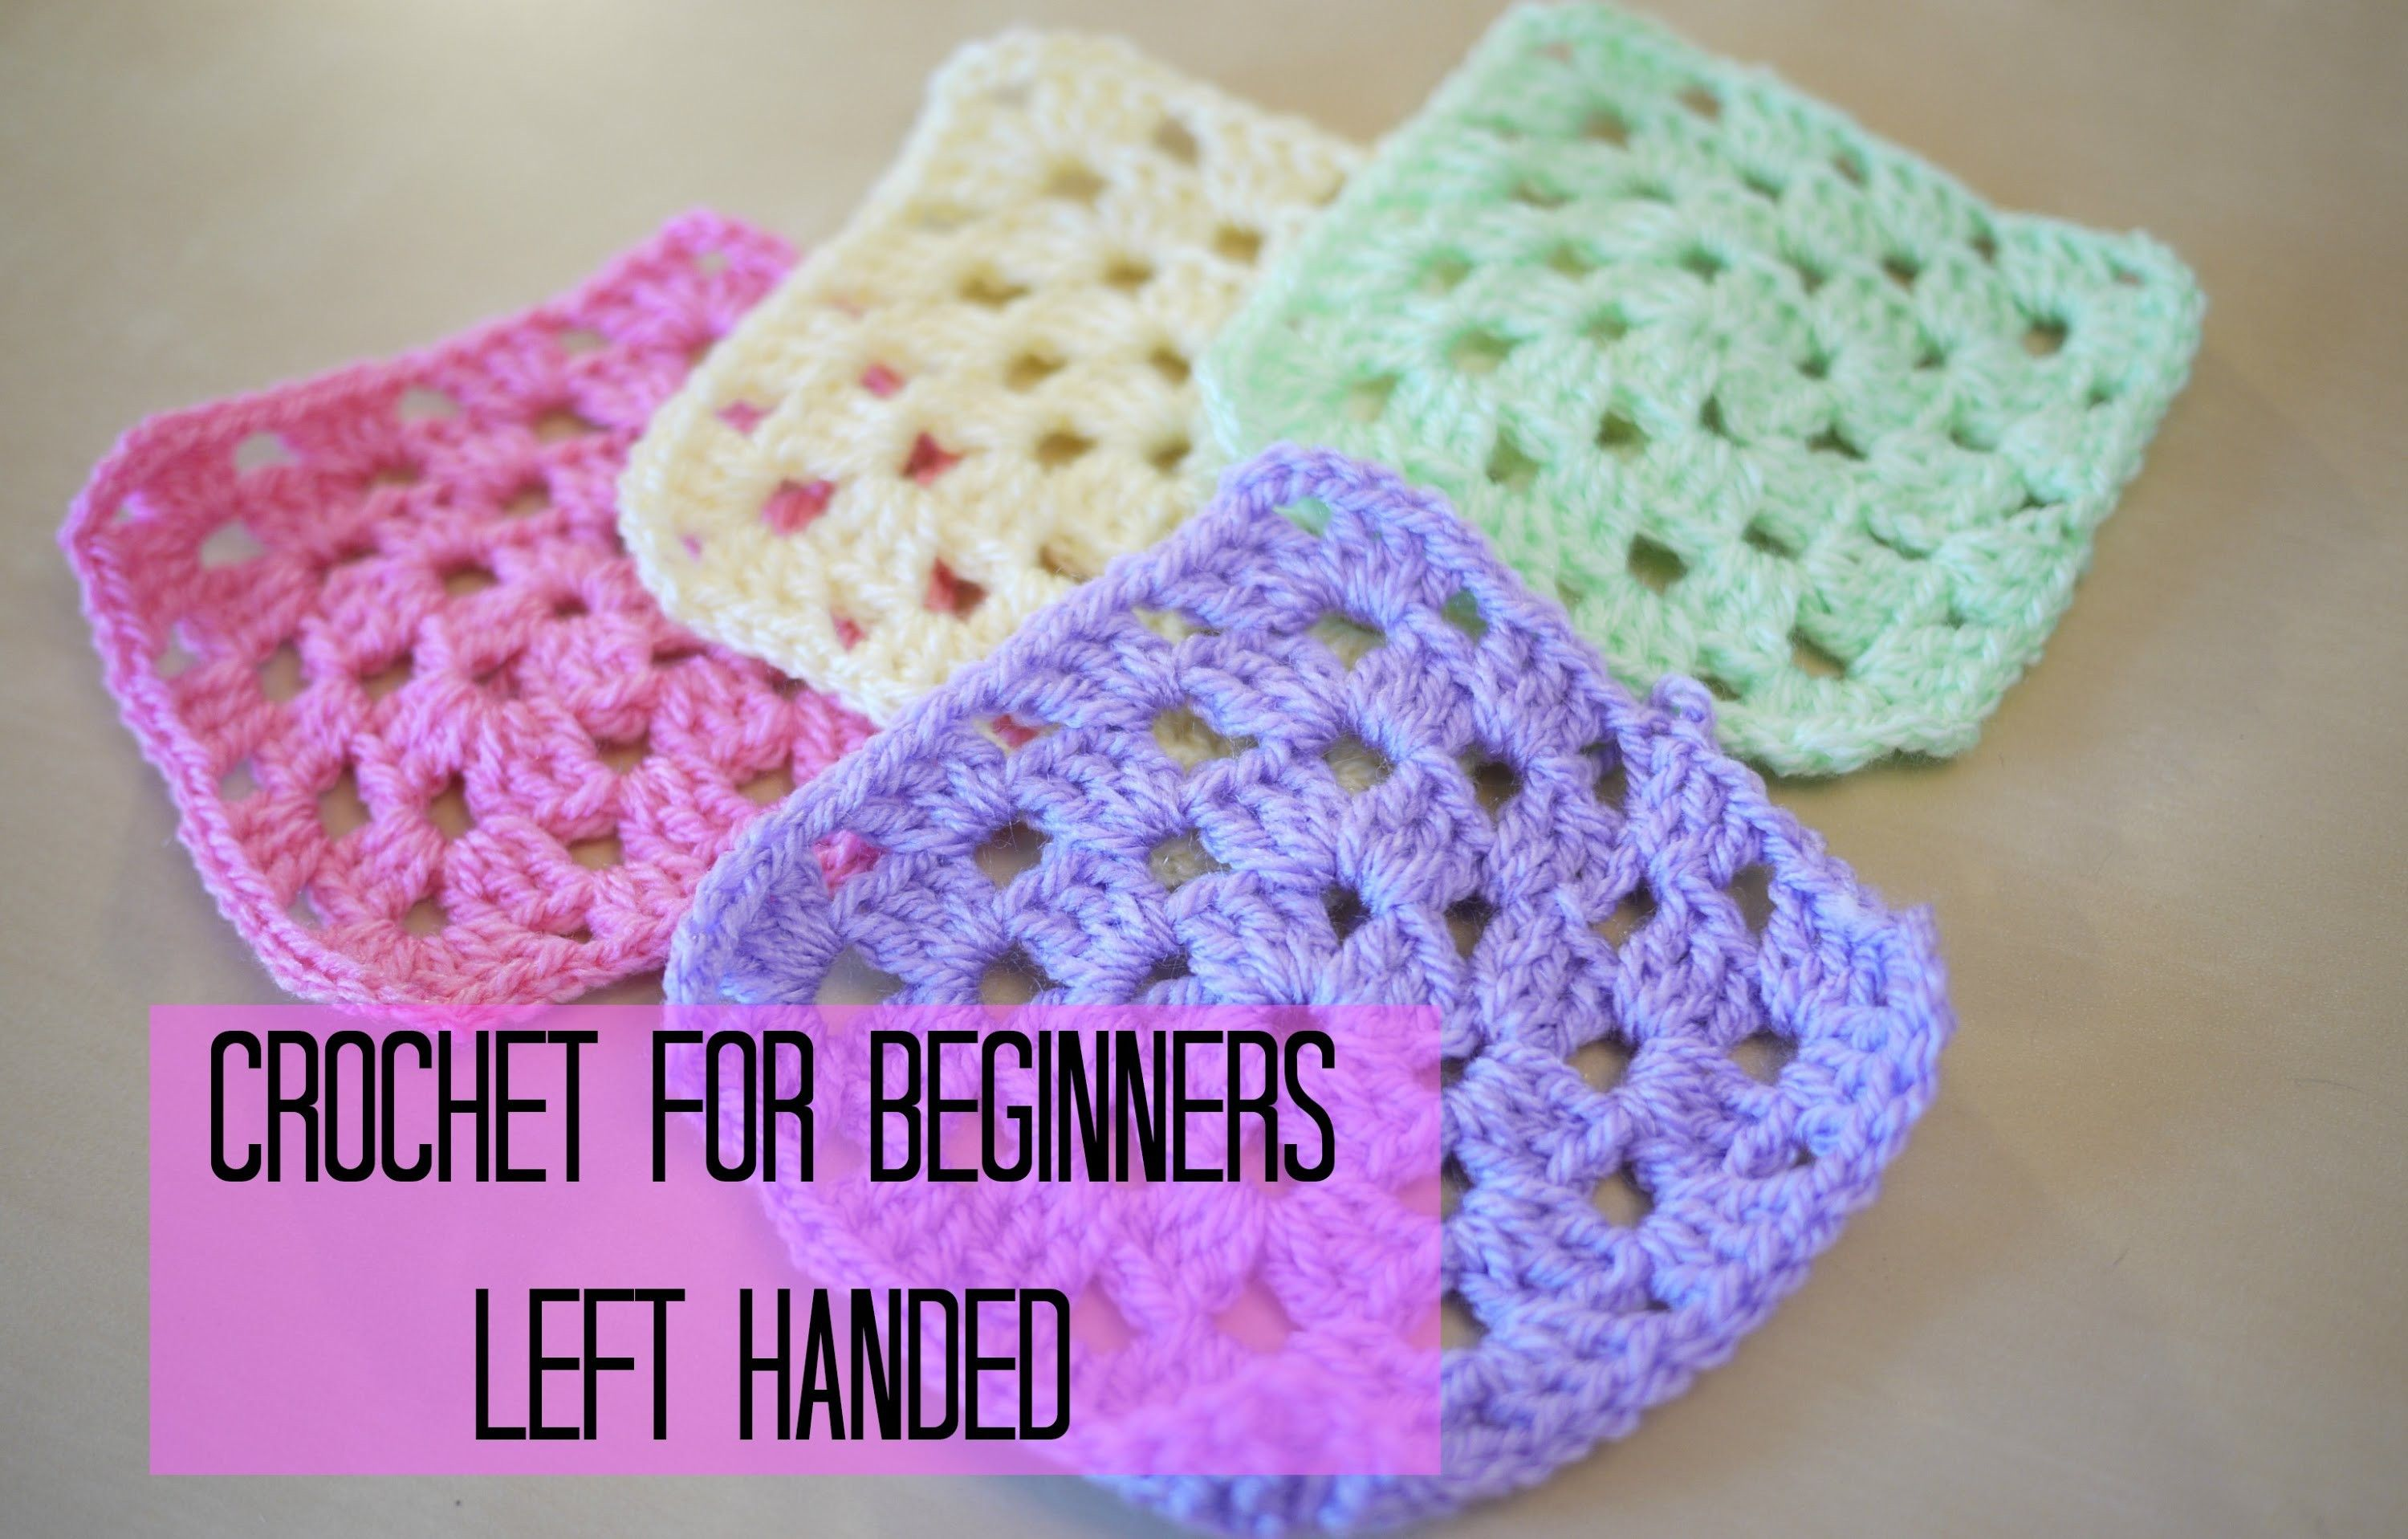 Left Handed Crochet: How To Crochet A Granny Square For Beginners